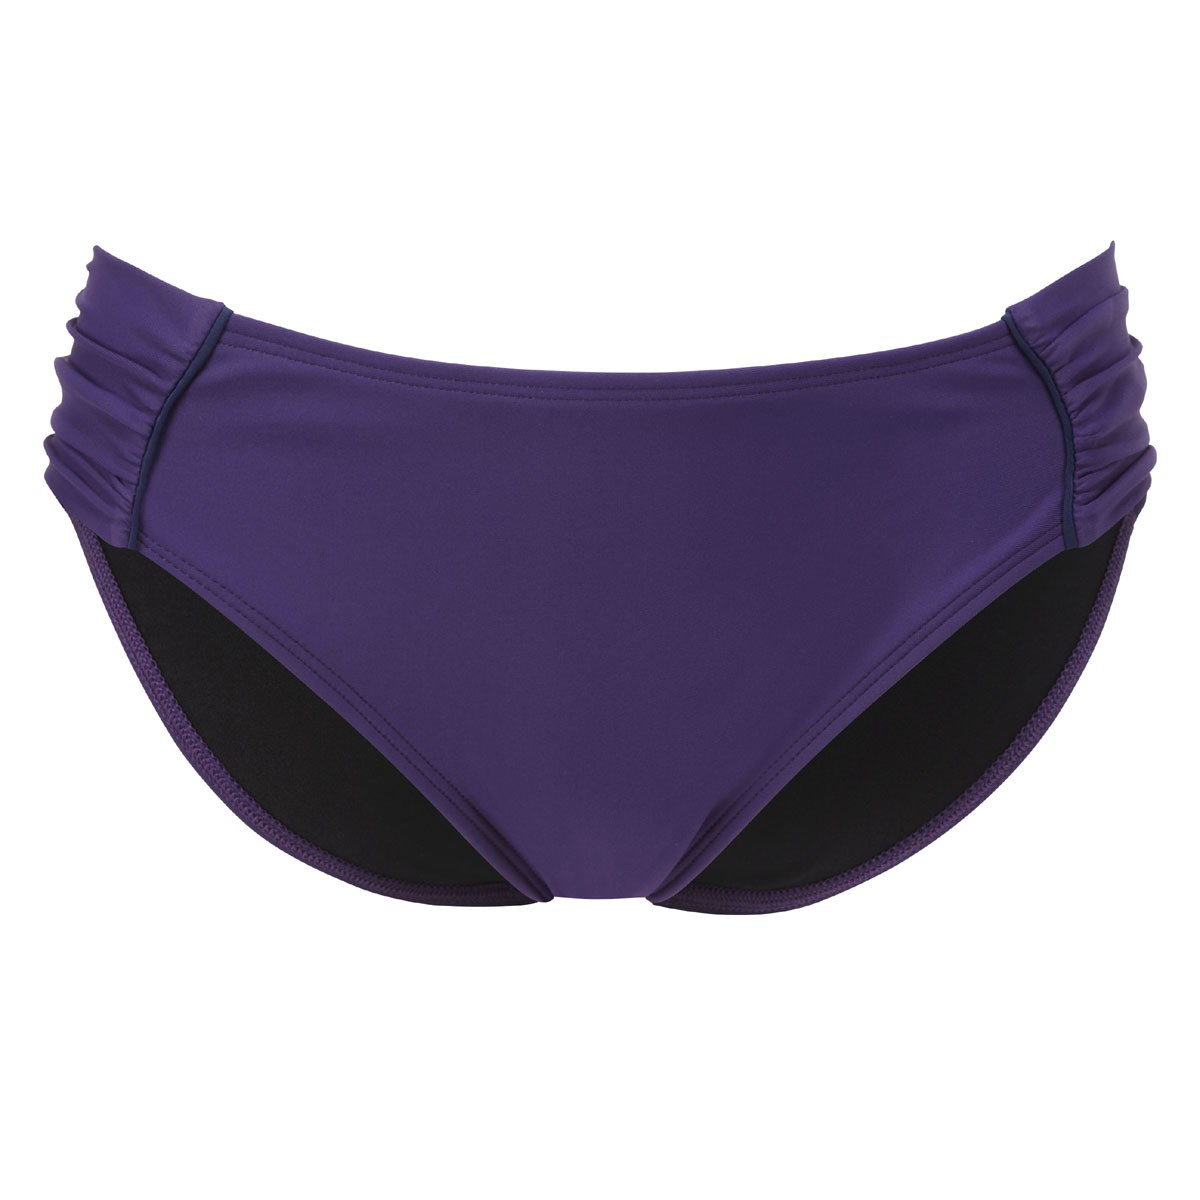 Panache Veronica Gathered Bikini Brief - Cassis